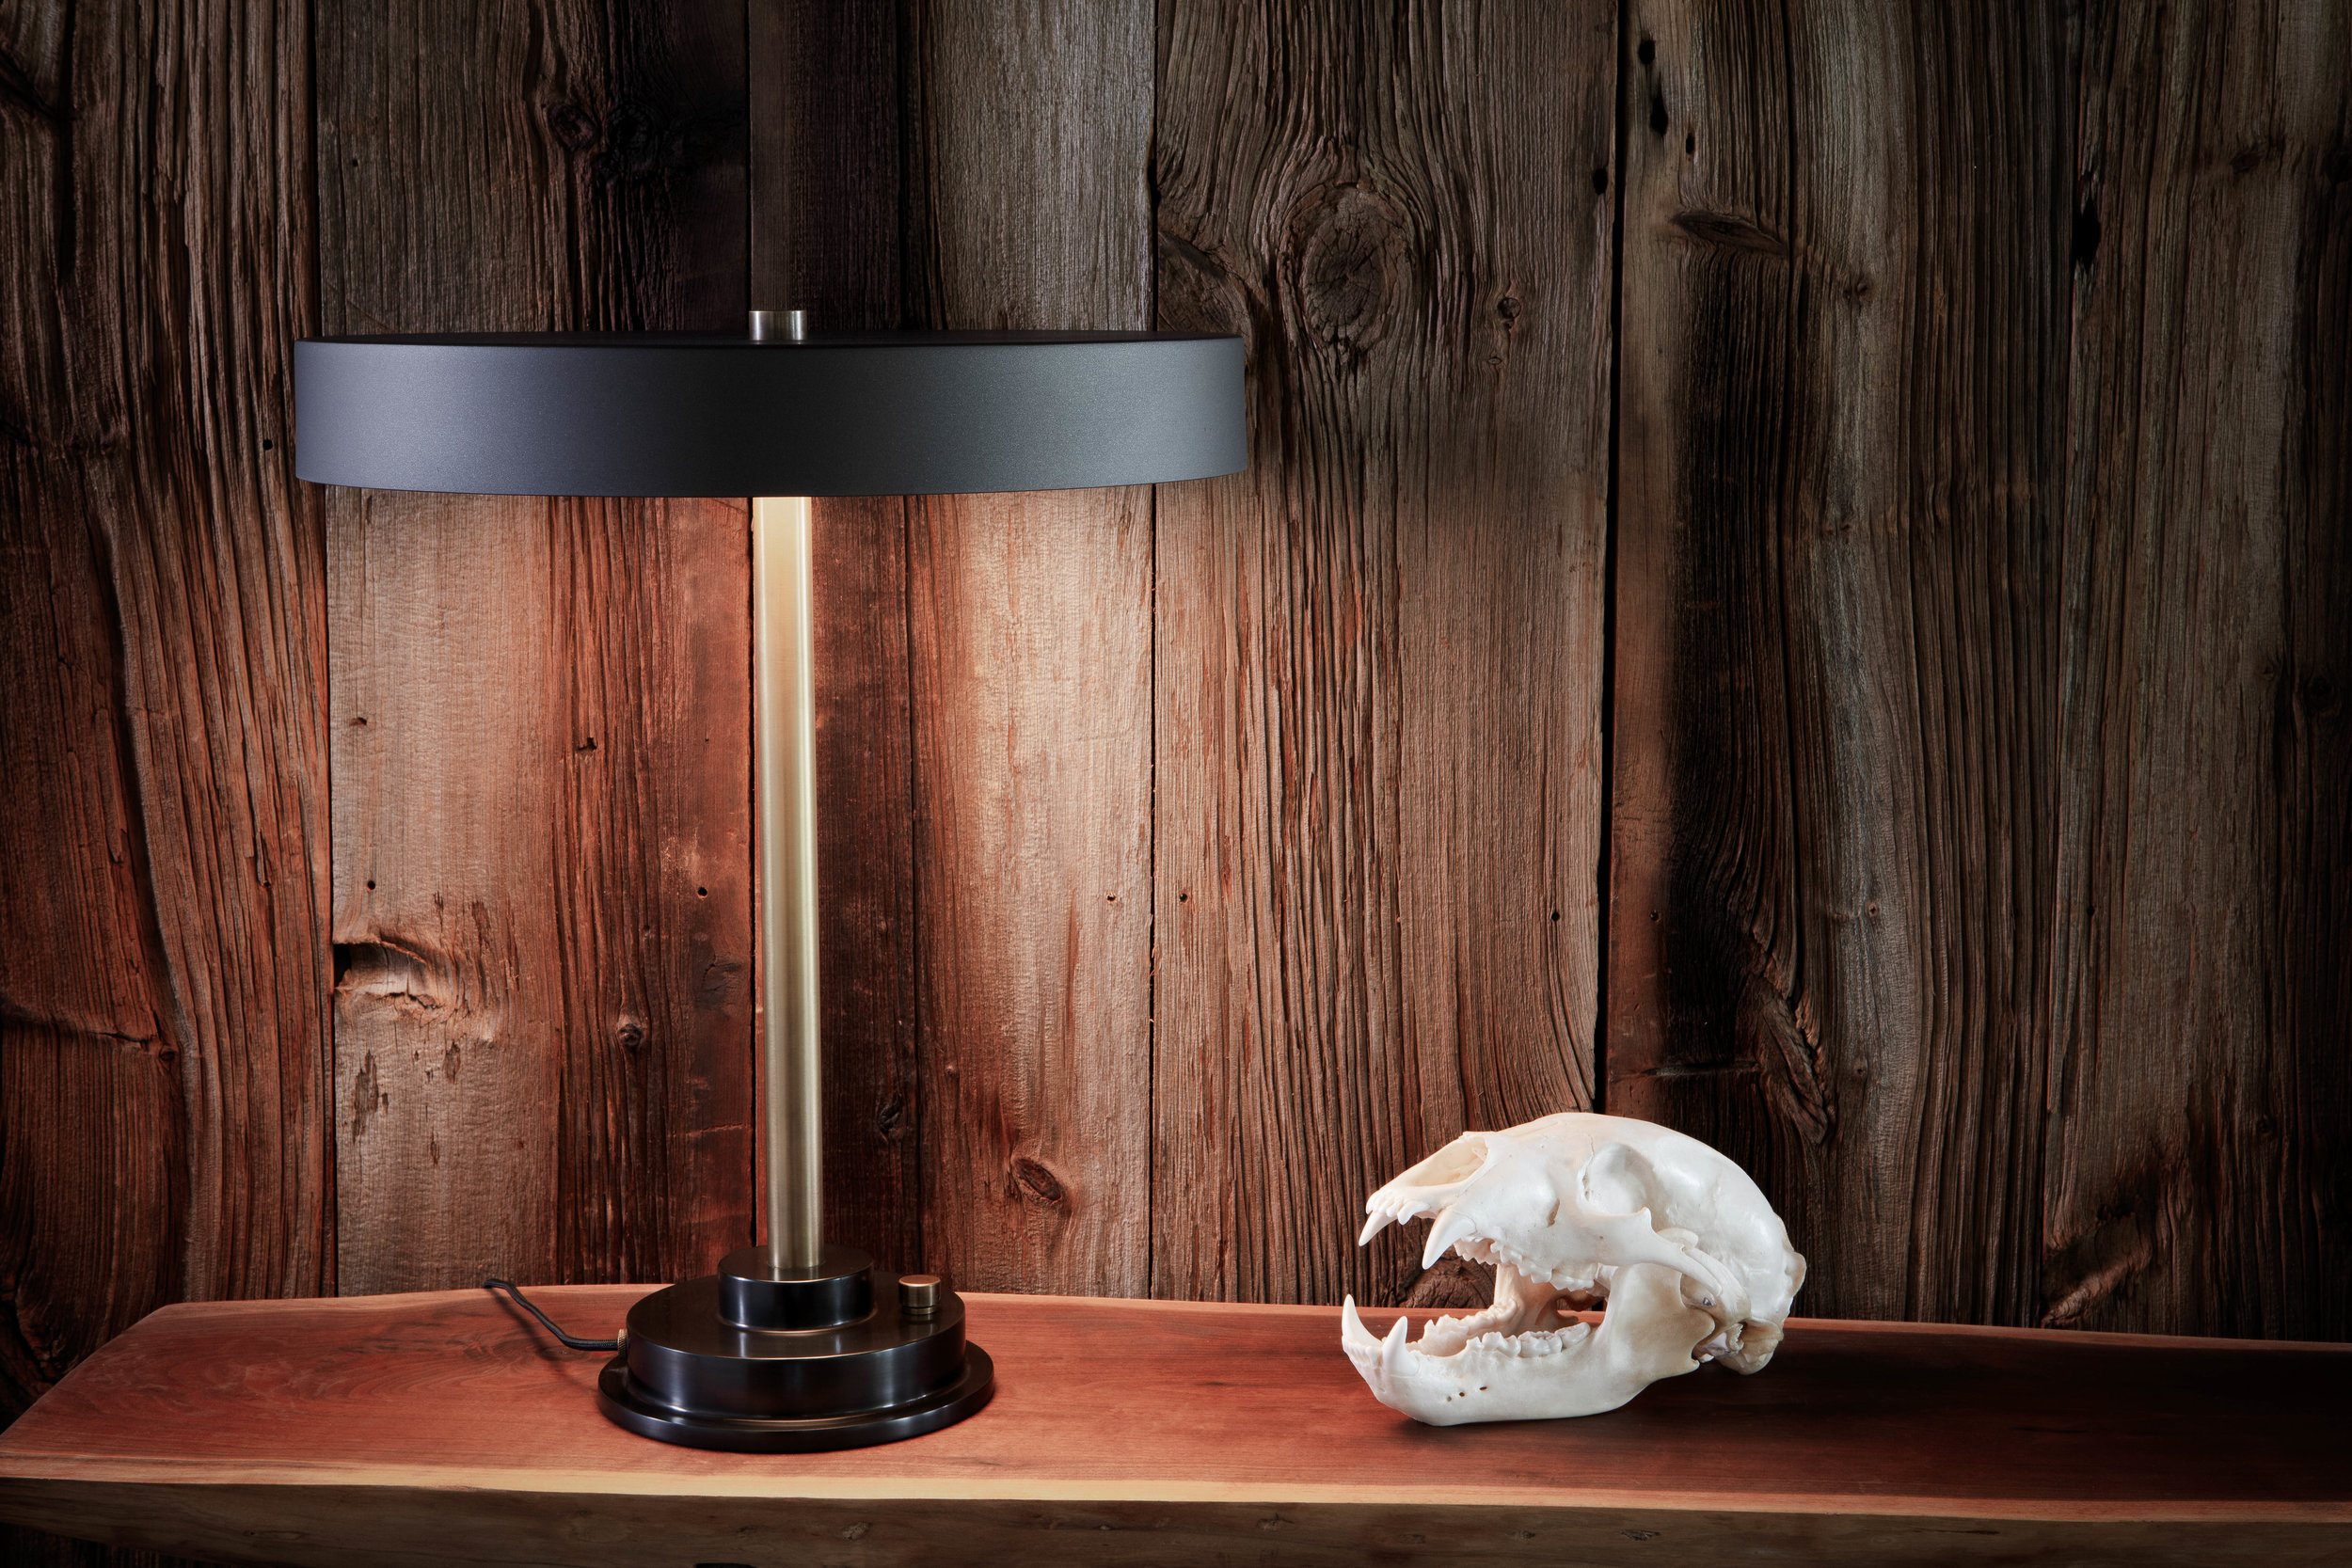 APD Argosy Product Division Disc Lamp Matte Black  Industrial & modern product design for contemporary interiors. We believe in quality, simplicity, craftsmanship, and attention to detail.